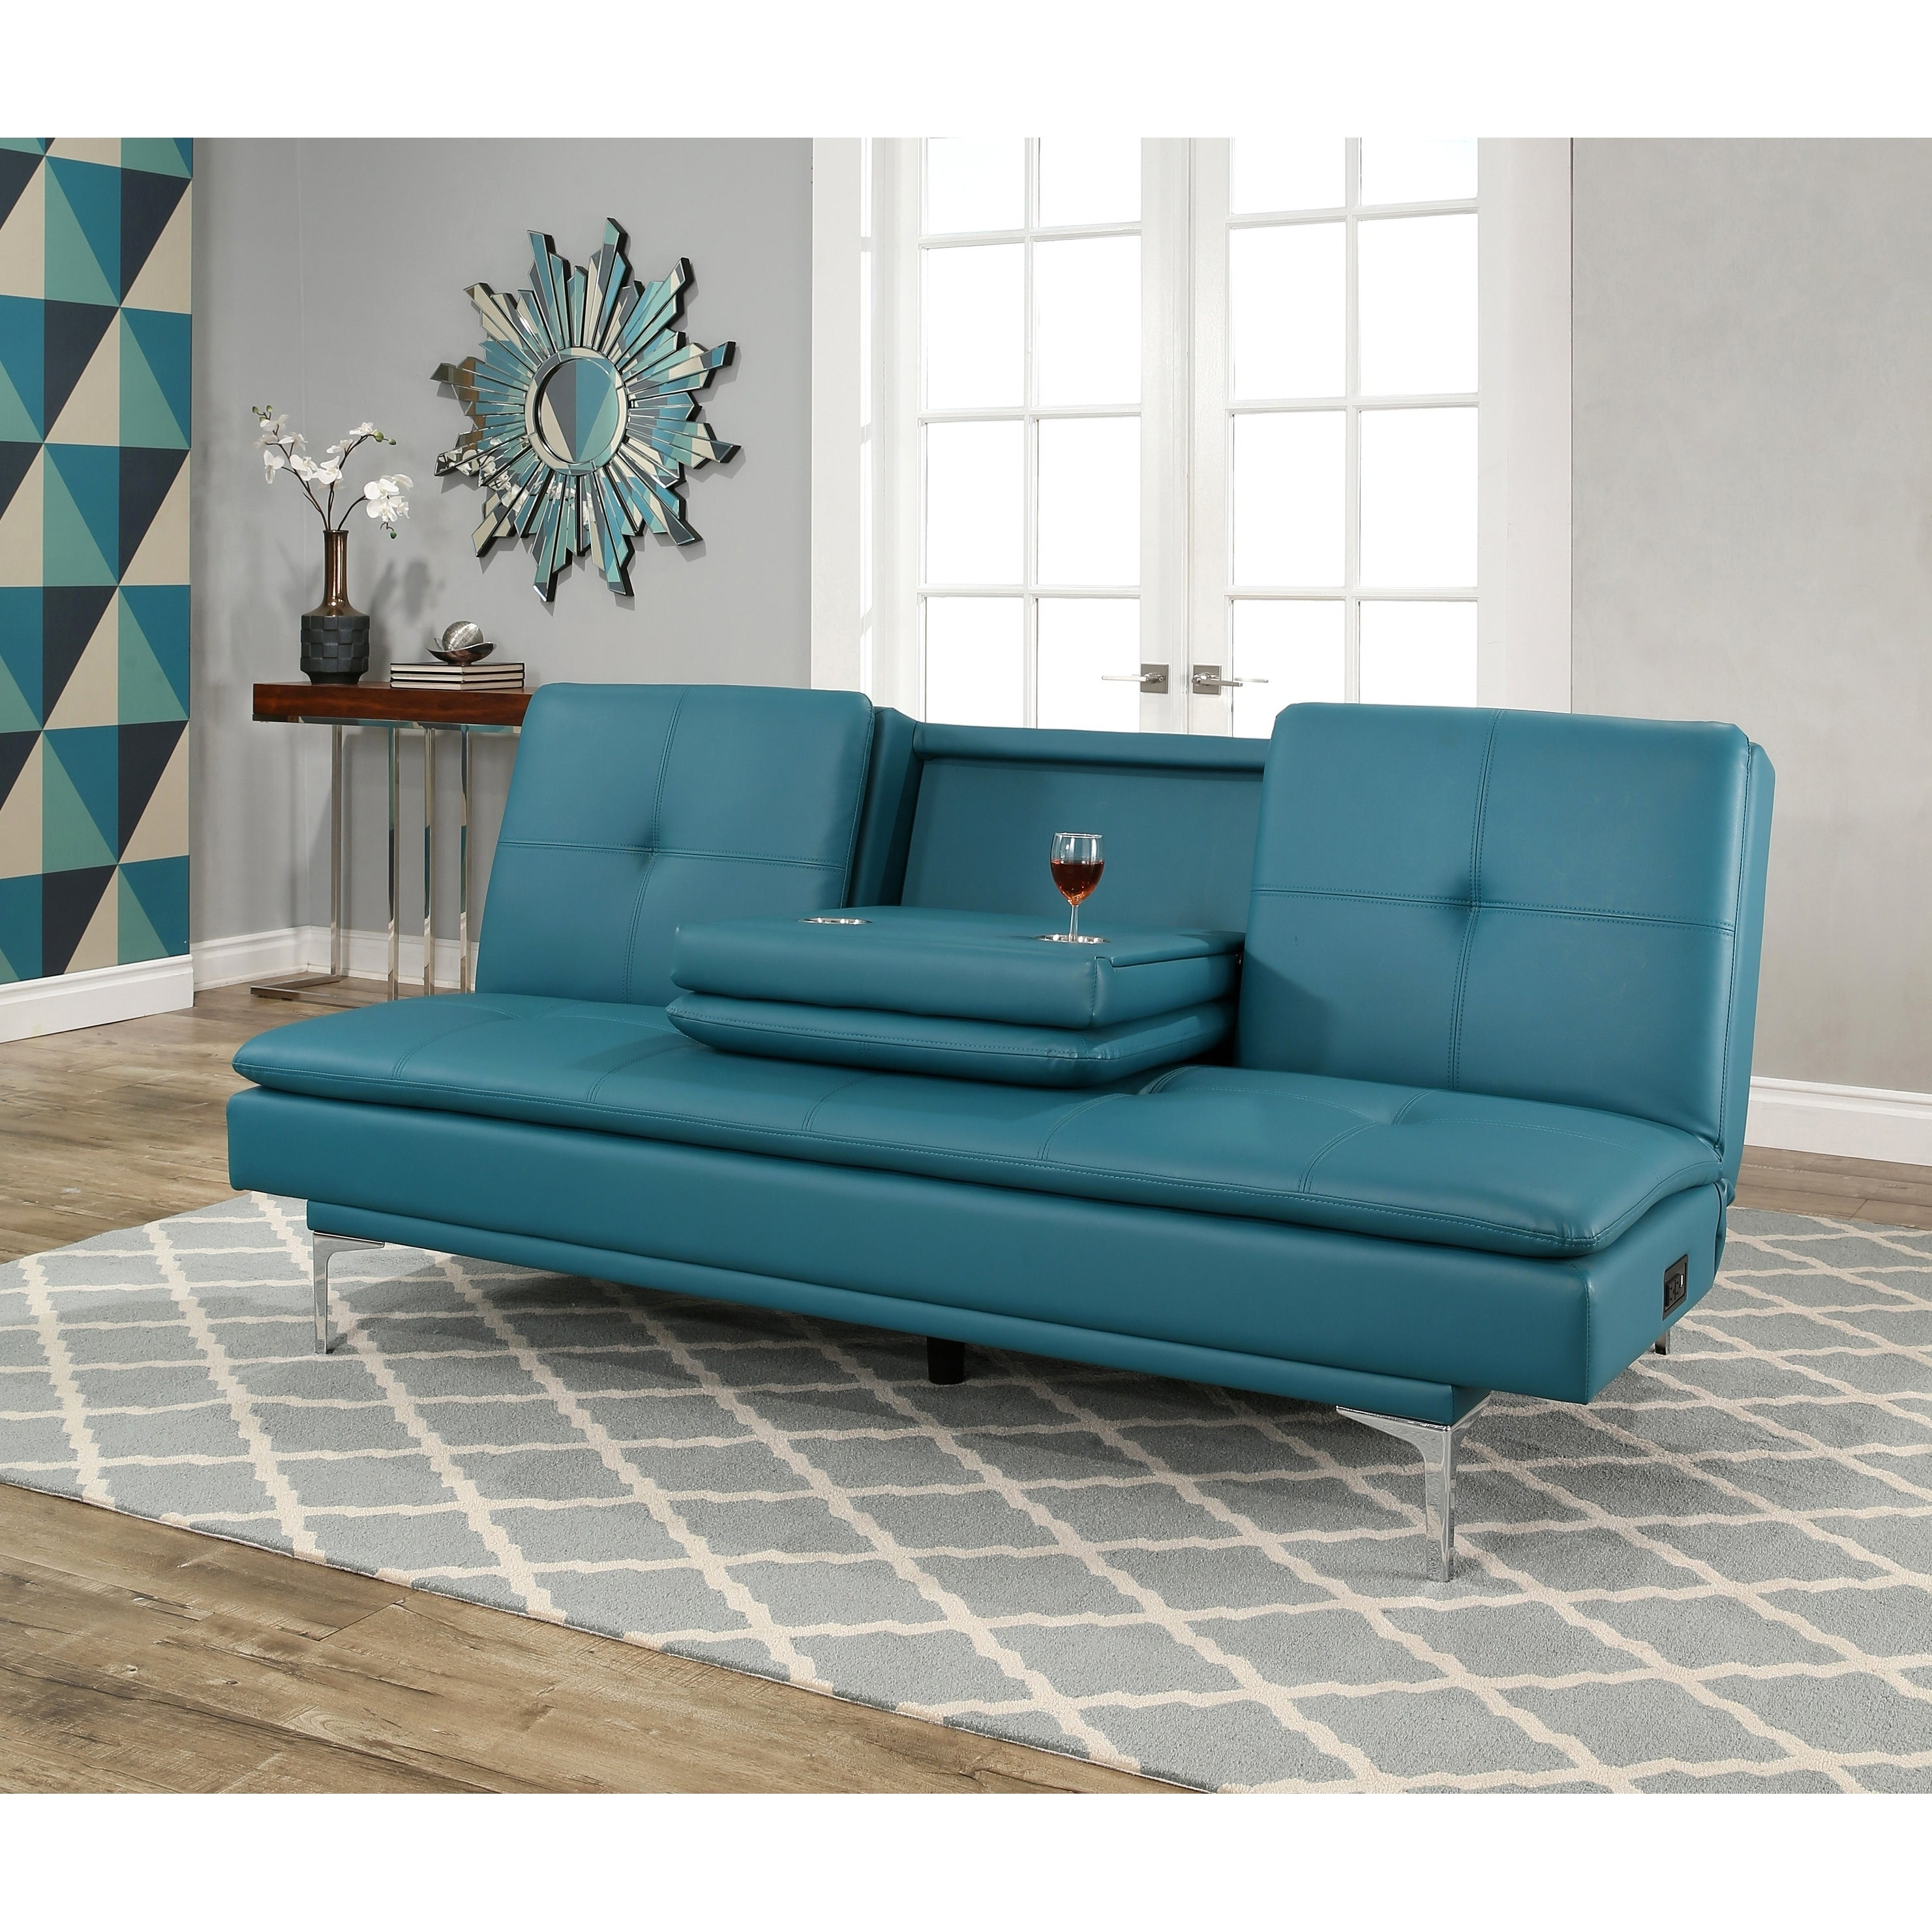 Abbyson Kilby Turquoise Bonded Leather Sofa Bed With Console On Free Shipping Today 19429173